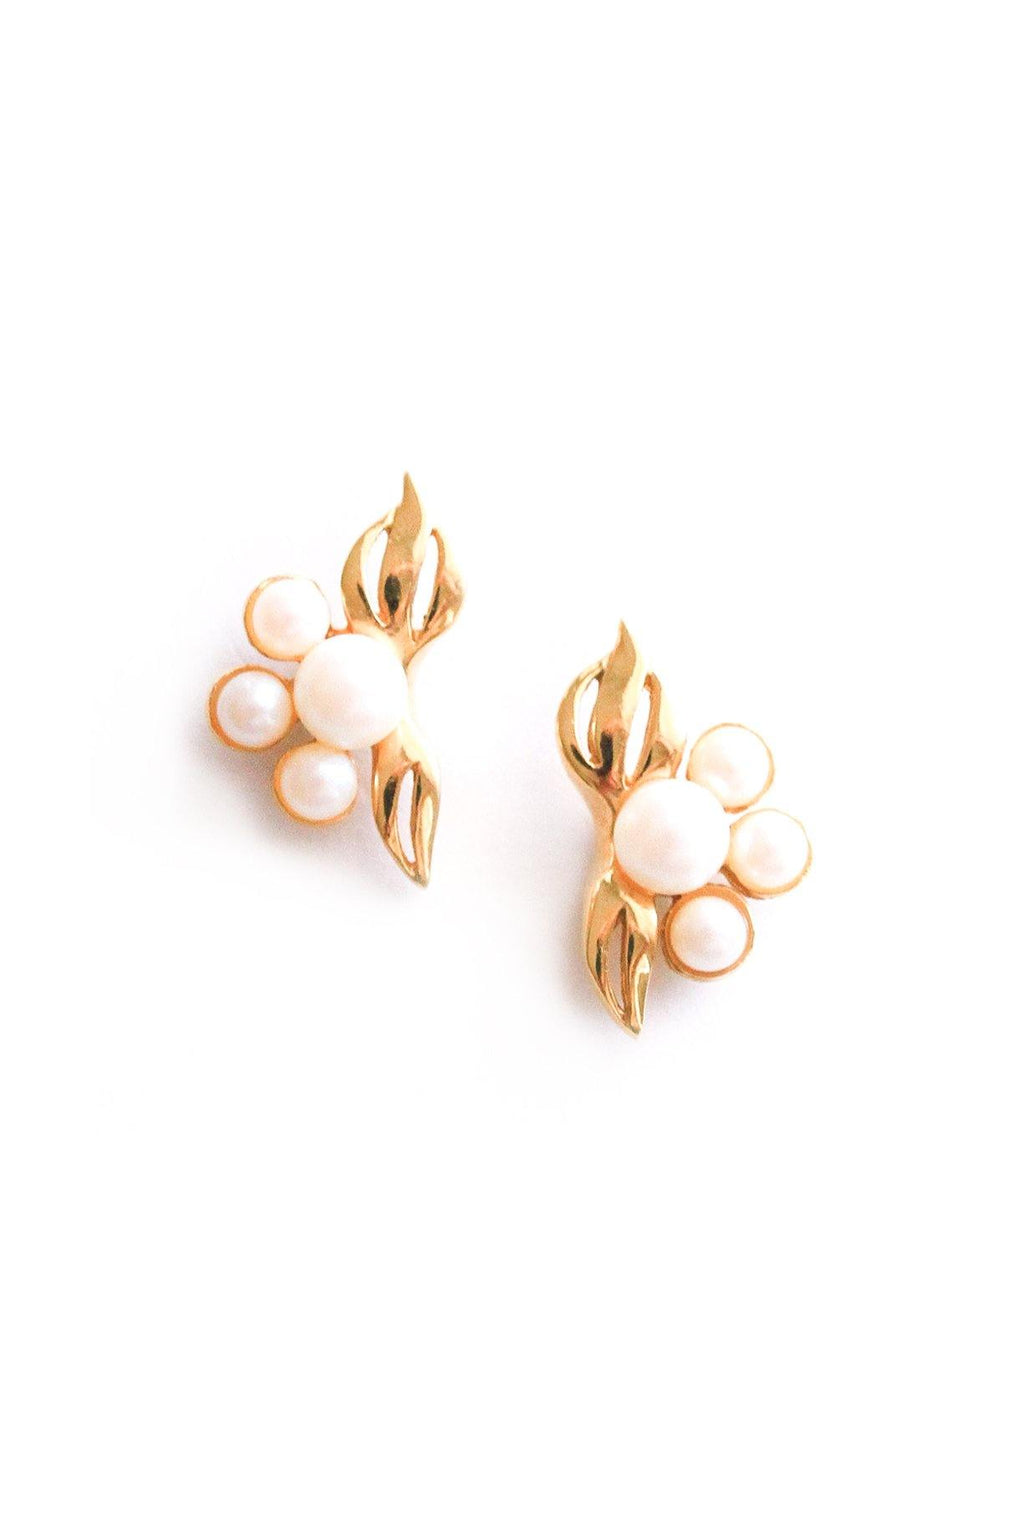 Dainty Pearl Pierced Earrings